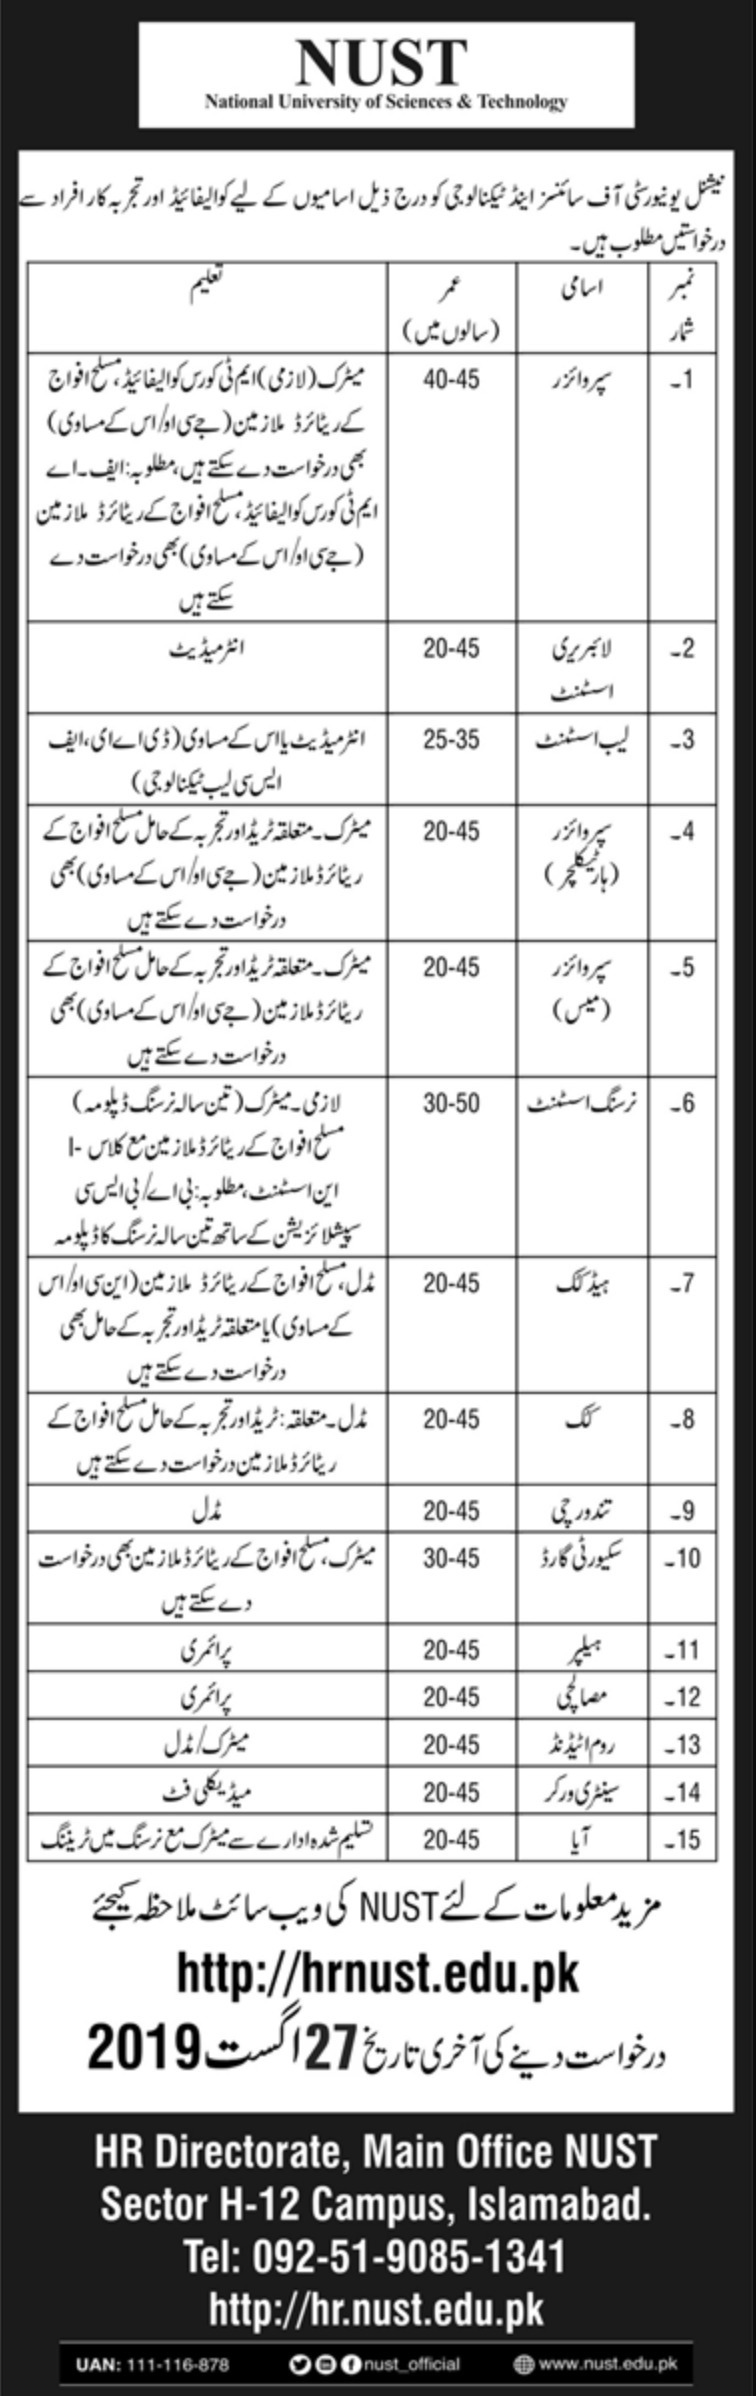 National University of Sciences & Technology NUST Jobs 2019